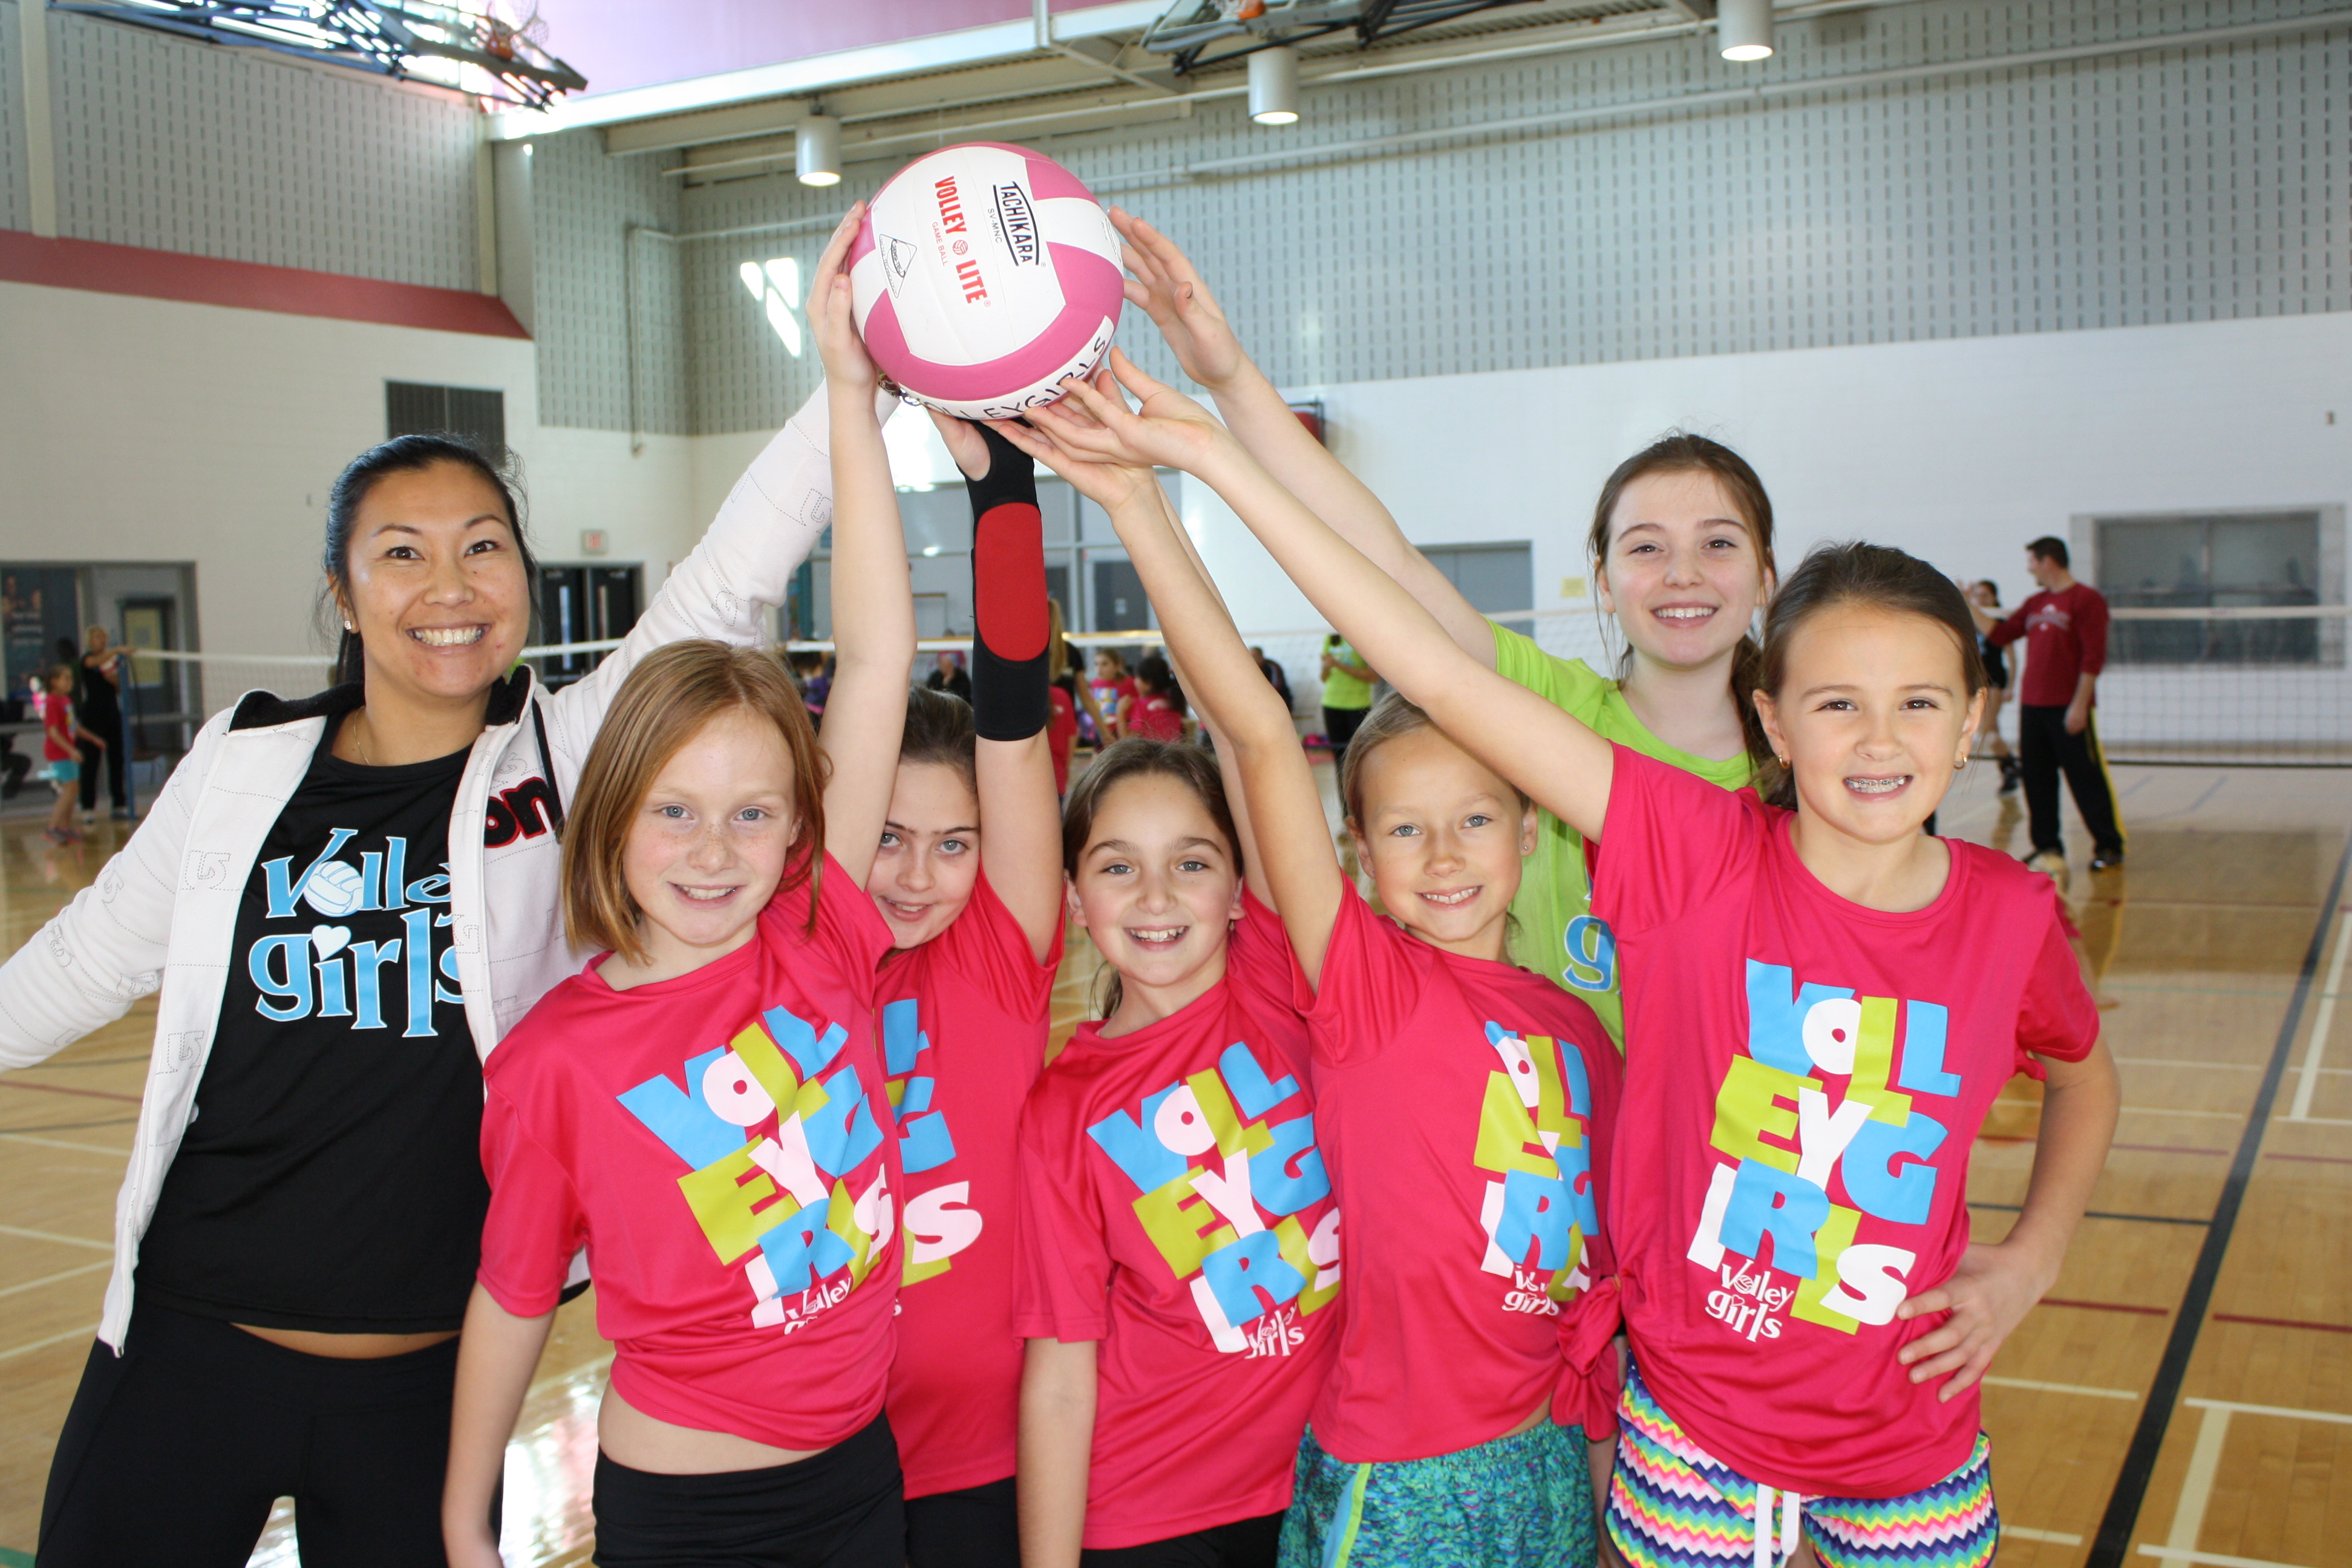 Since 2006, VolleyGirls Volleyball has made a name in the Burlington, Ontario and surrounding areas as a well-ordered, entertaining place to find friends and play volleyball. Many of our girls have climbed through our curricula and taken their volleyball skills and developments to their local schools and rep club teams. VolleyGirls provides age suitable volleyball skill training and advanced volleyball skill progress that keeps our girls returning and loving the game.